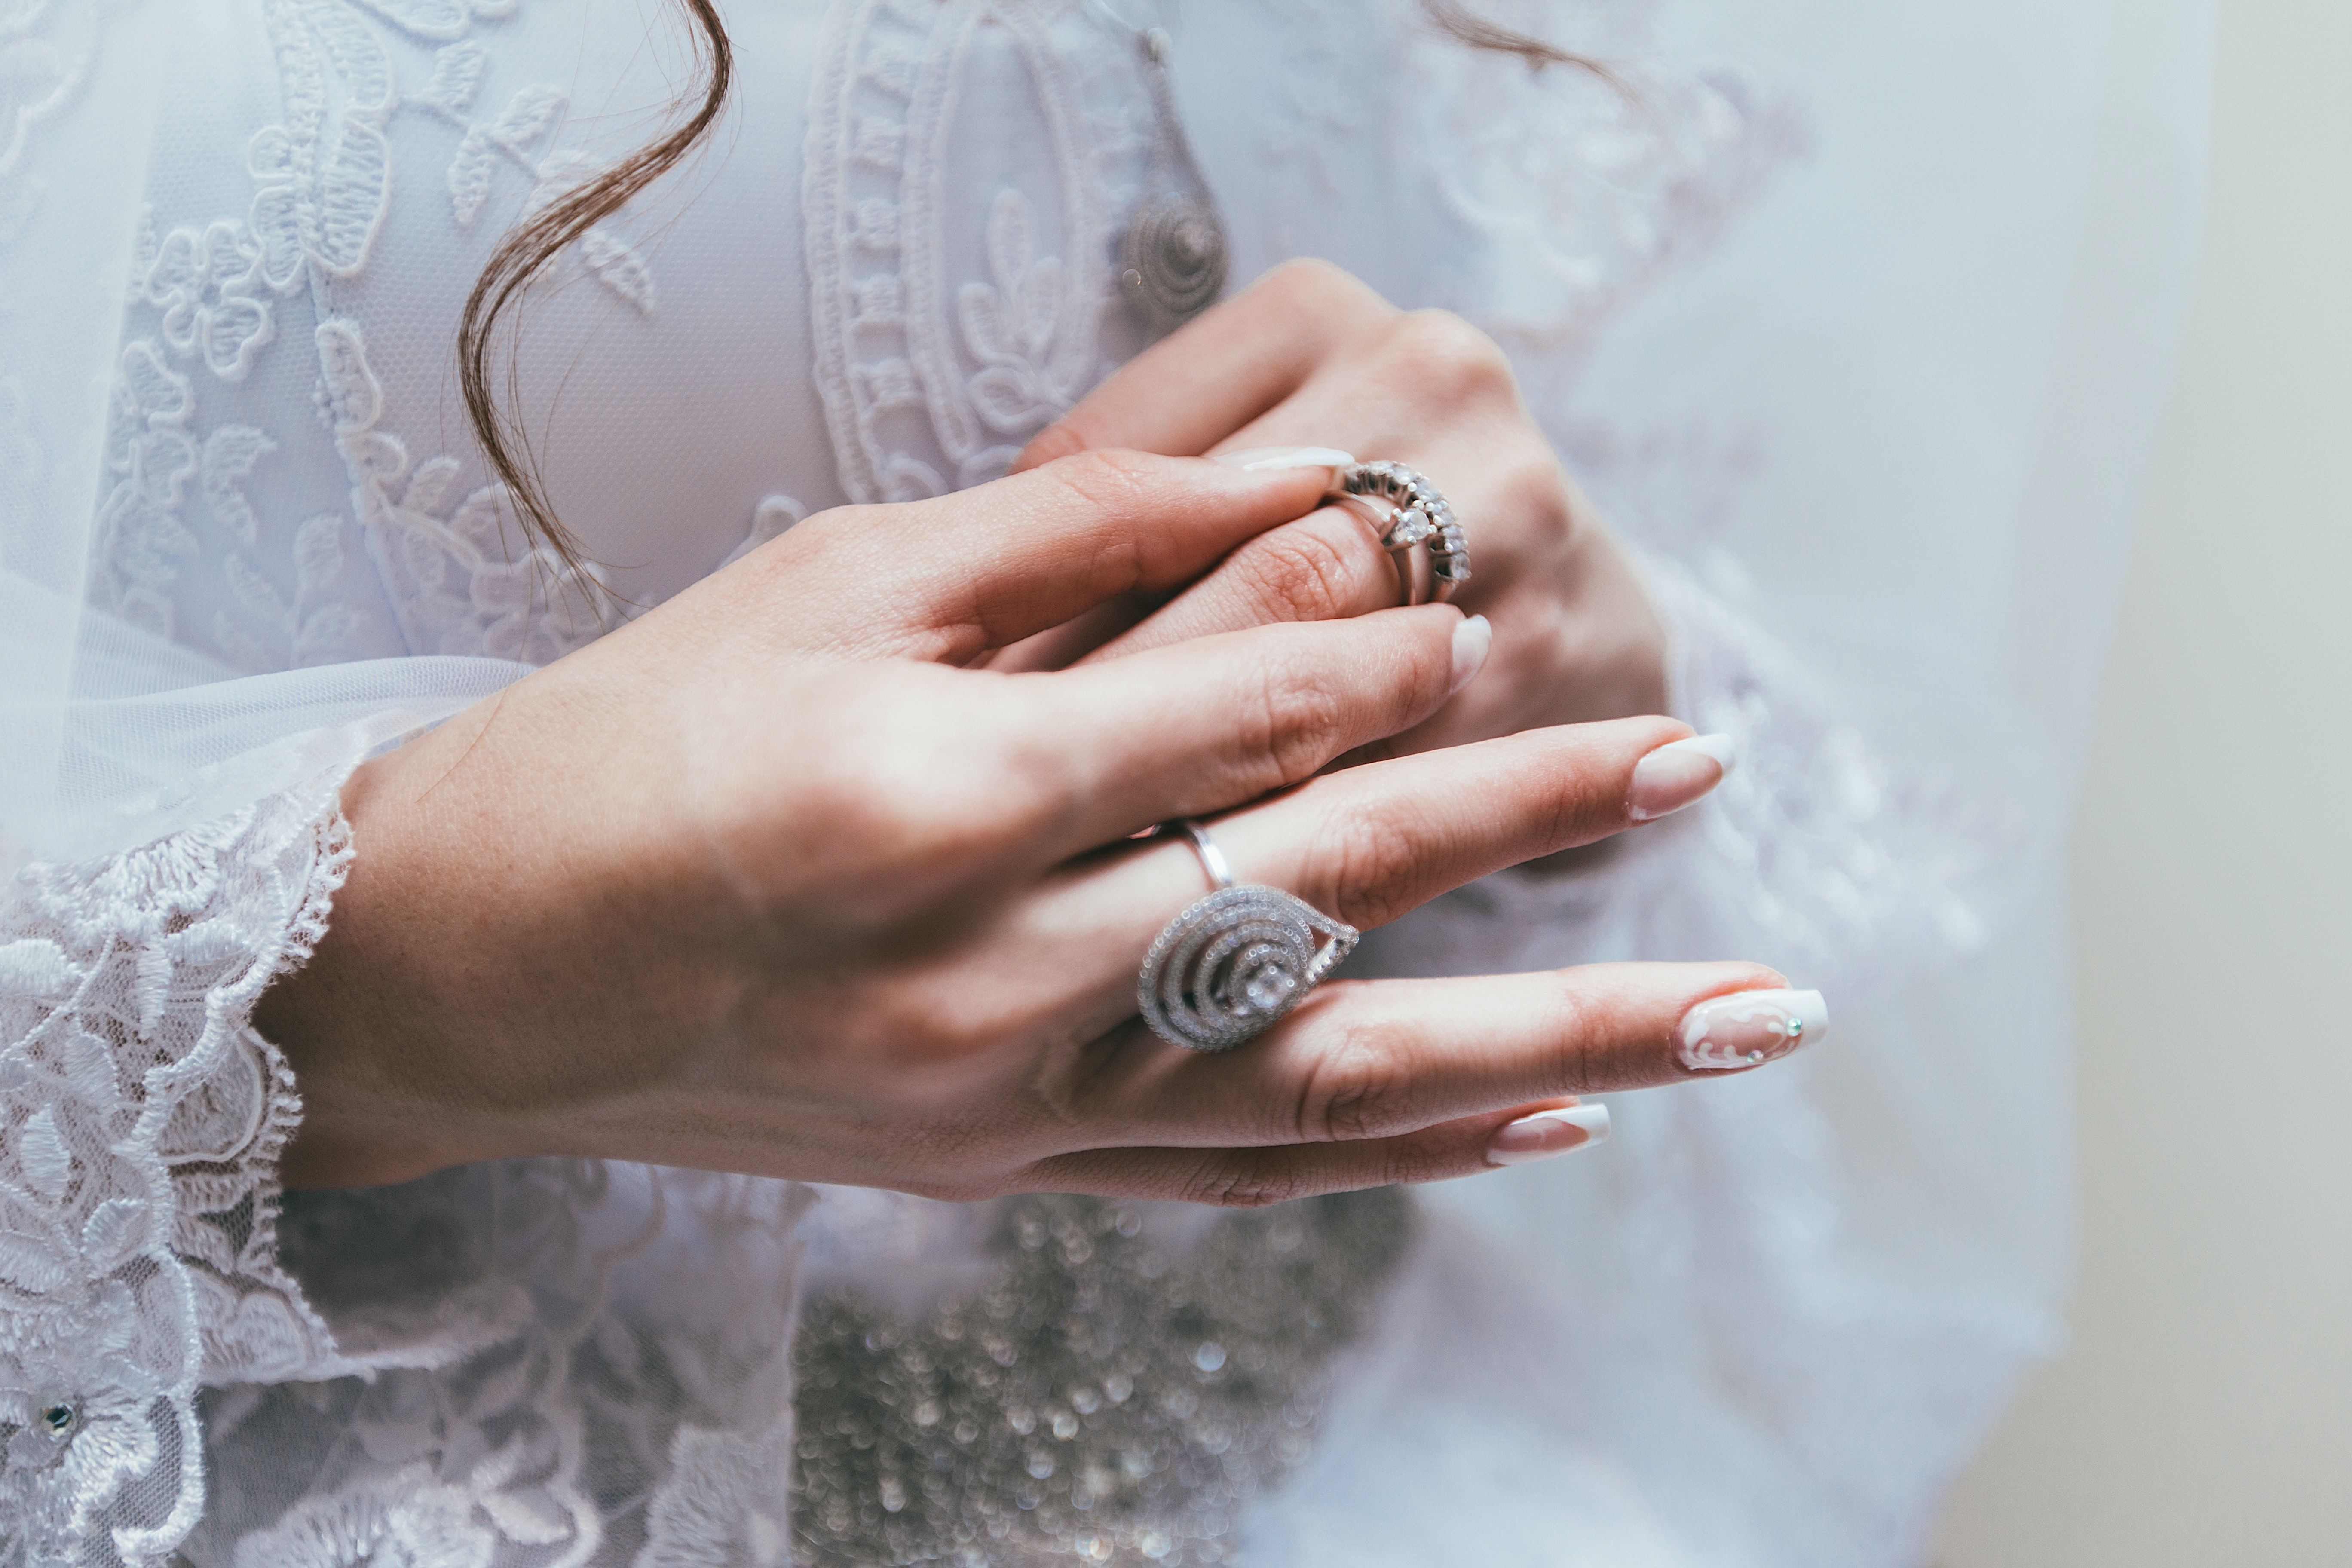 Texas bride touches her wedding ring on finger in front of white lace wedding dress